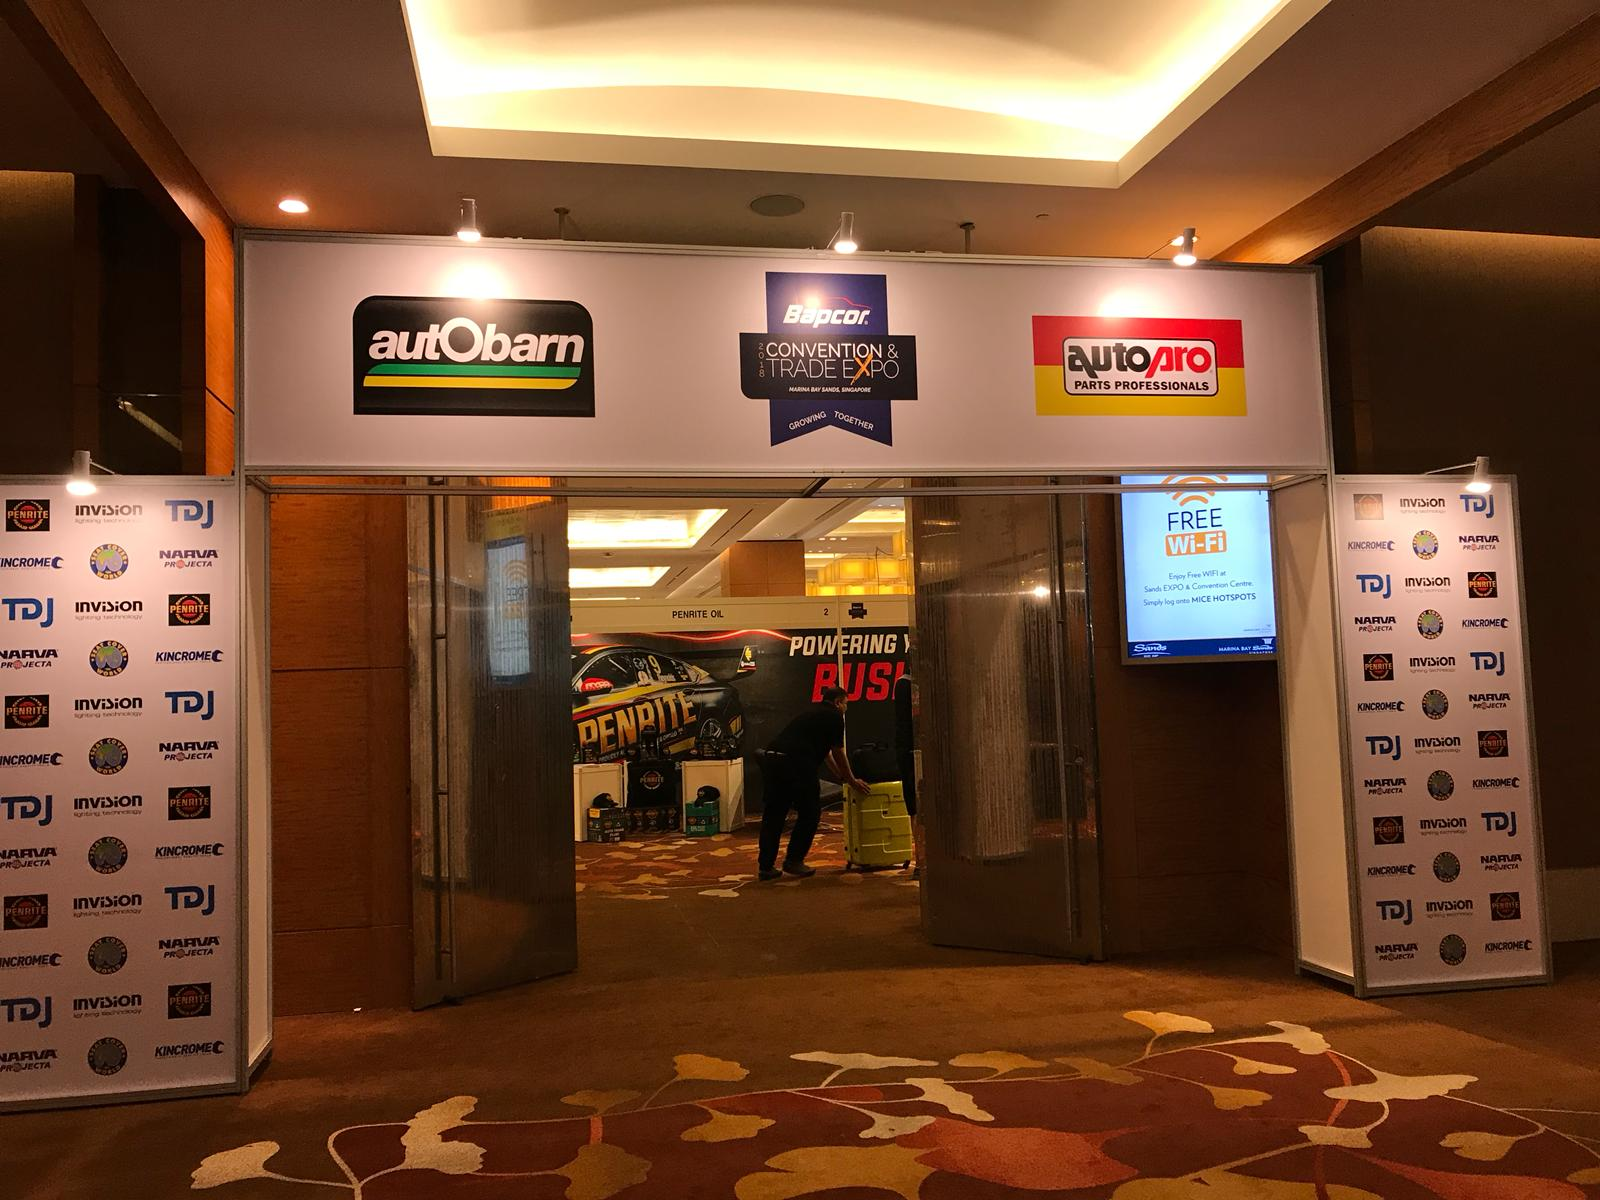 Andatech at the Bapcor Convention and Trade Expo, Singapore